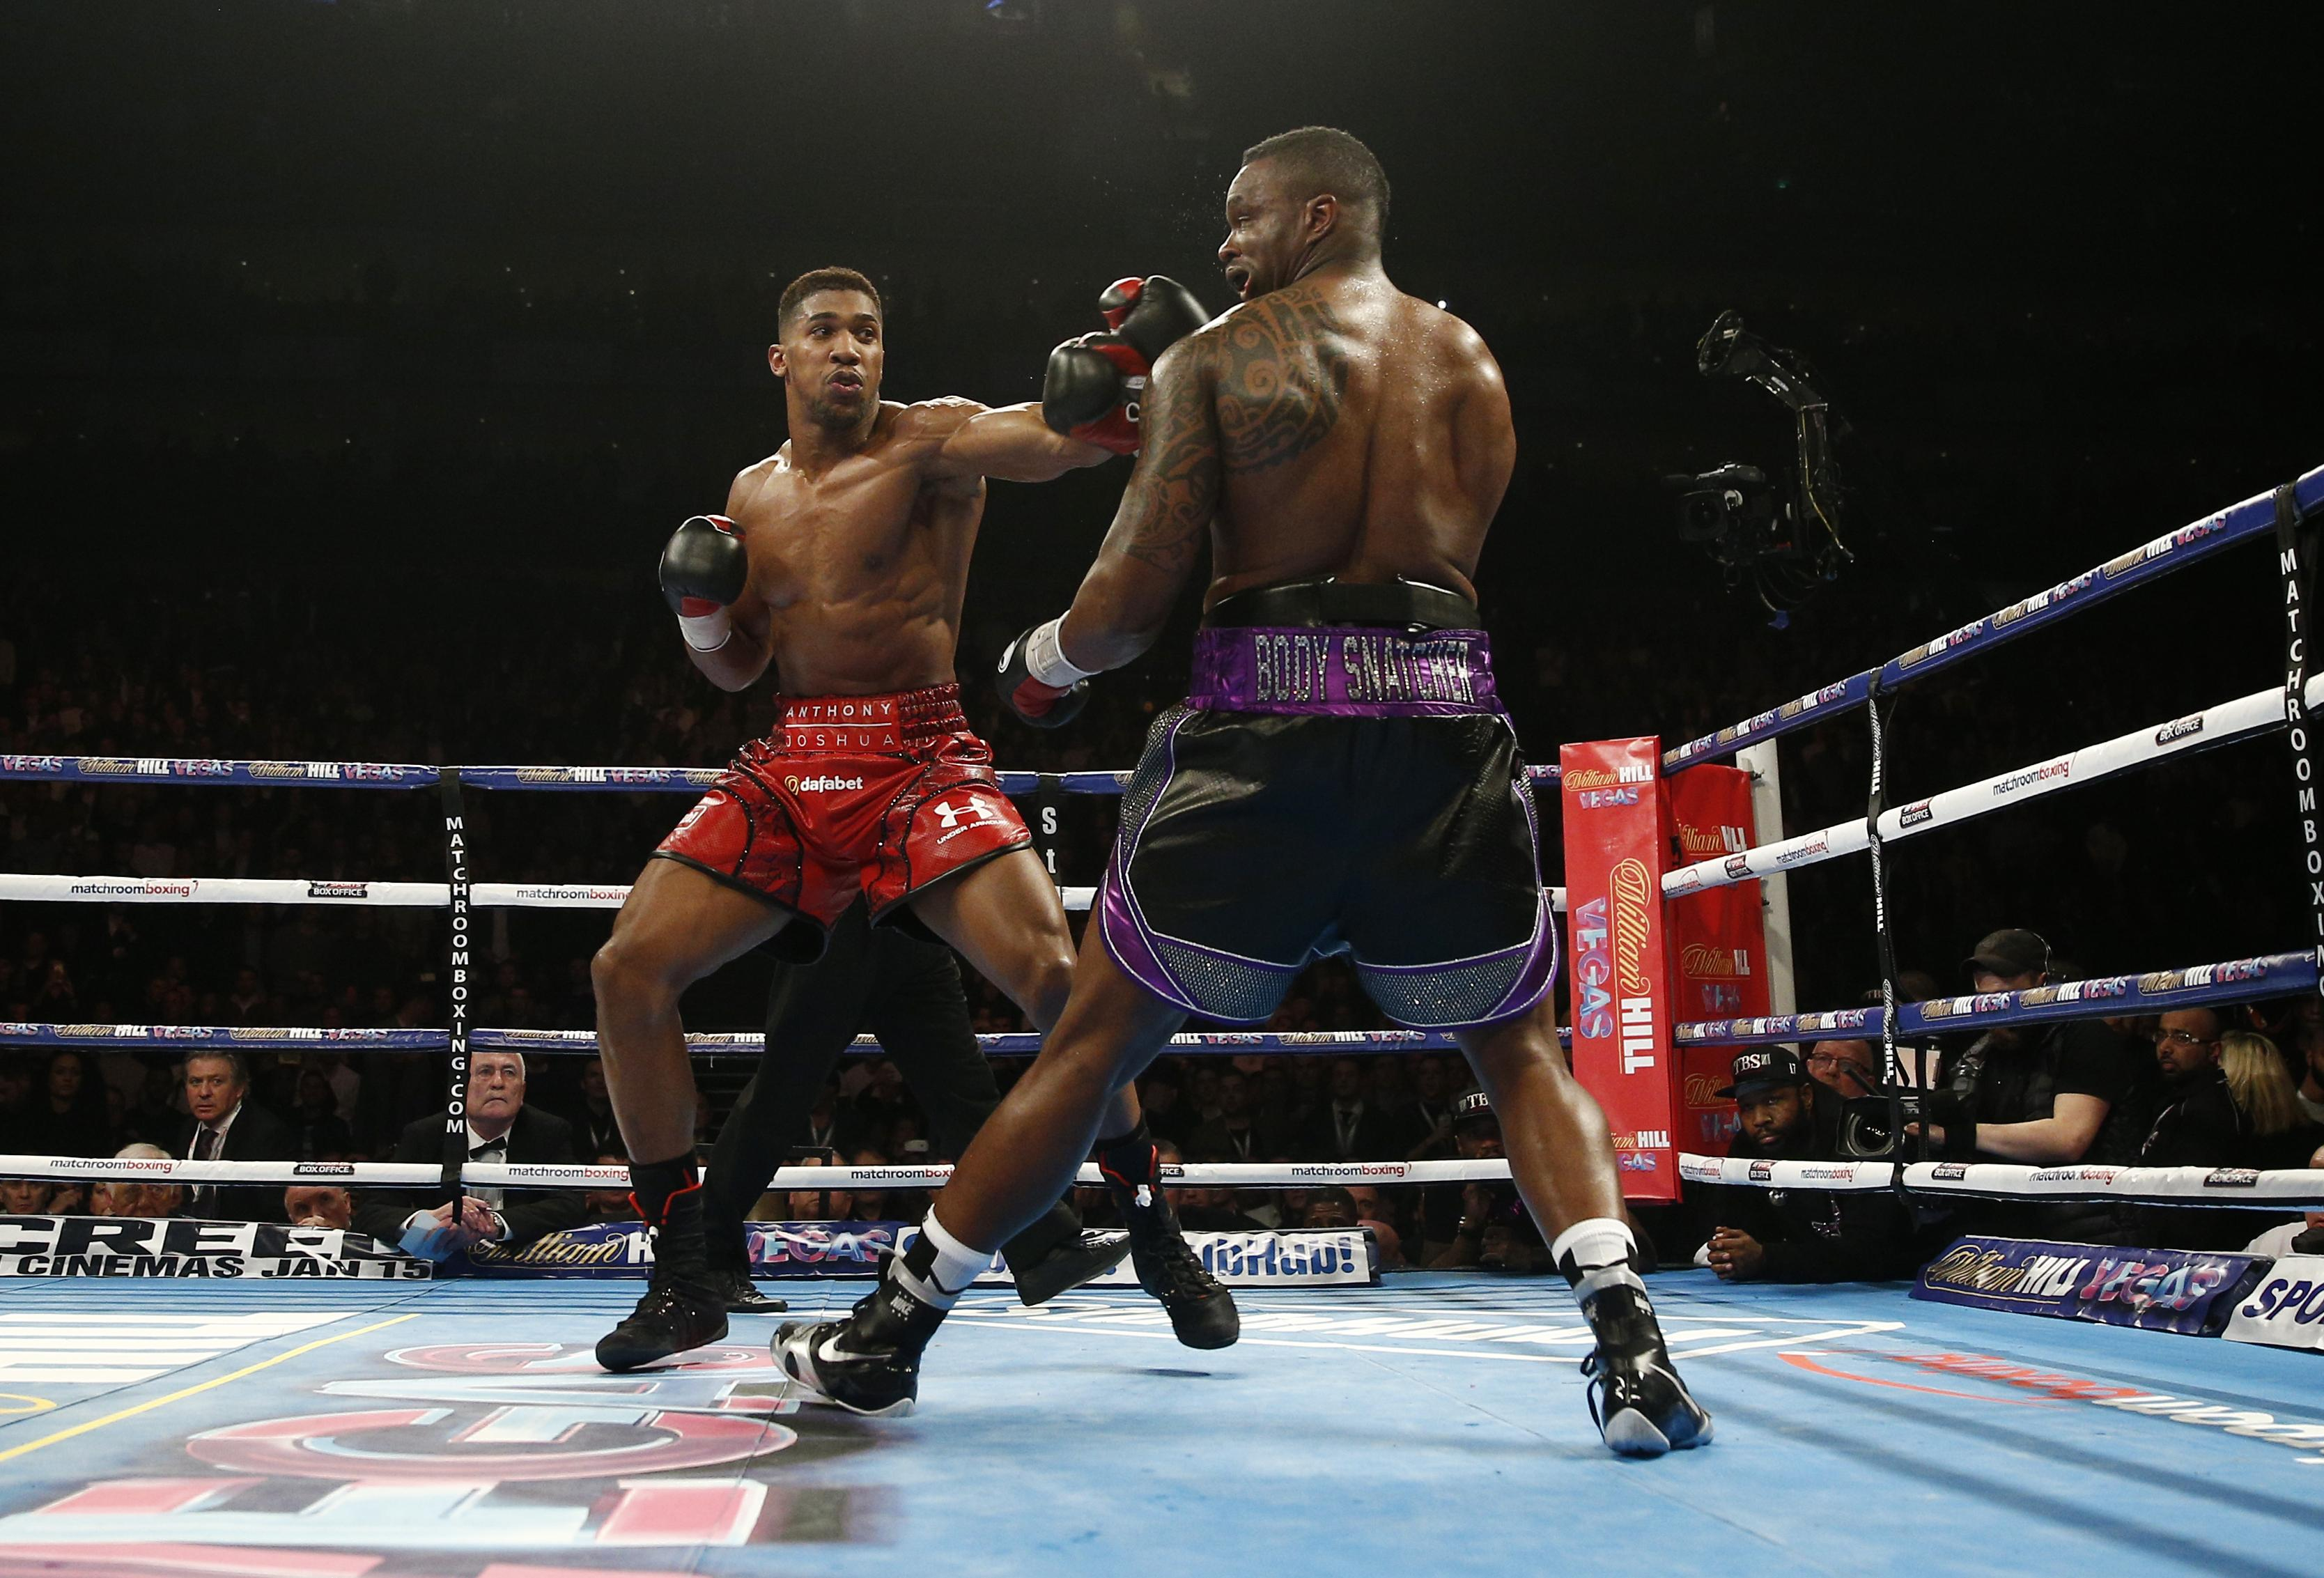 Joshua beat Whyte at the O2 Arena in 2015